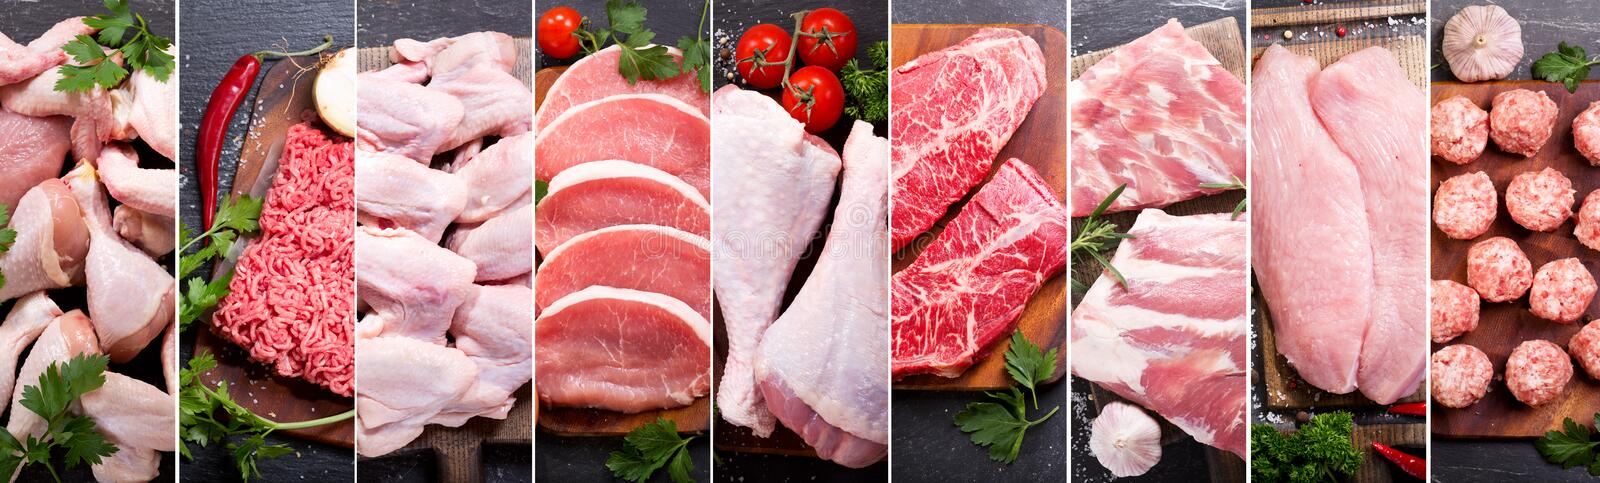 Food collage of various fresh meat and chicken. Top view royalty free stock images